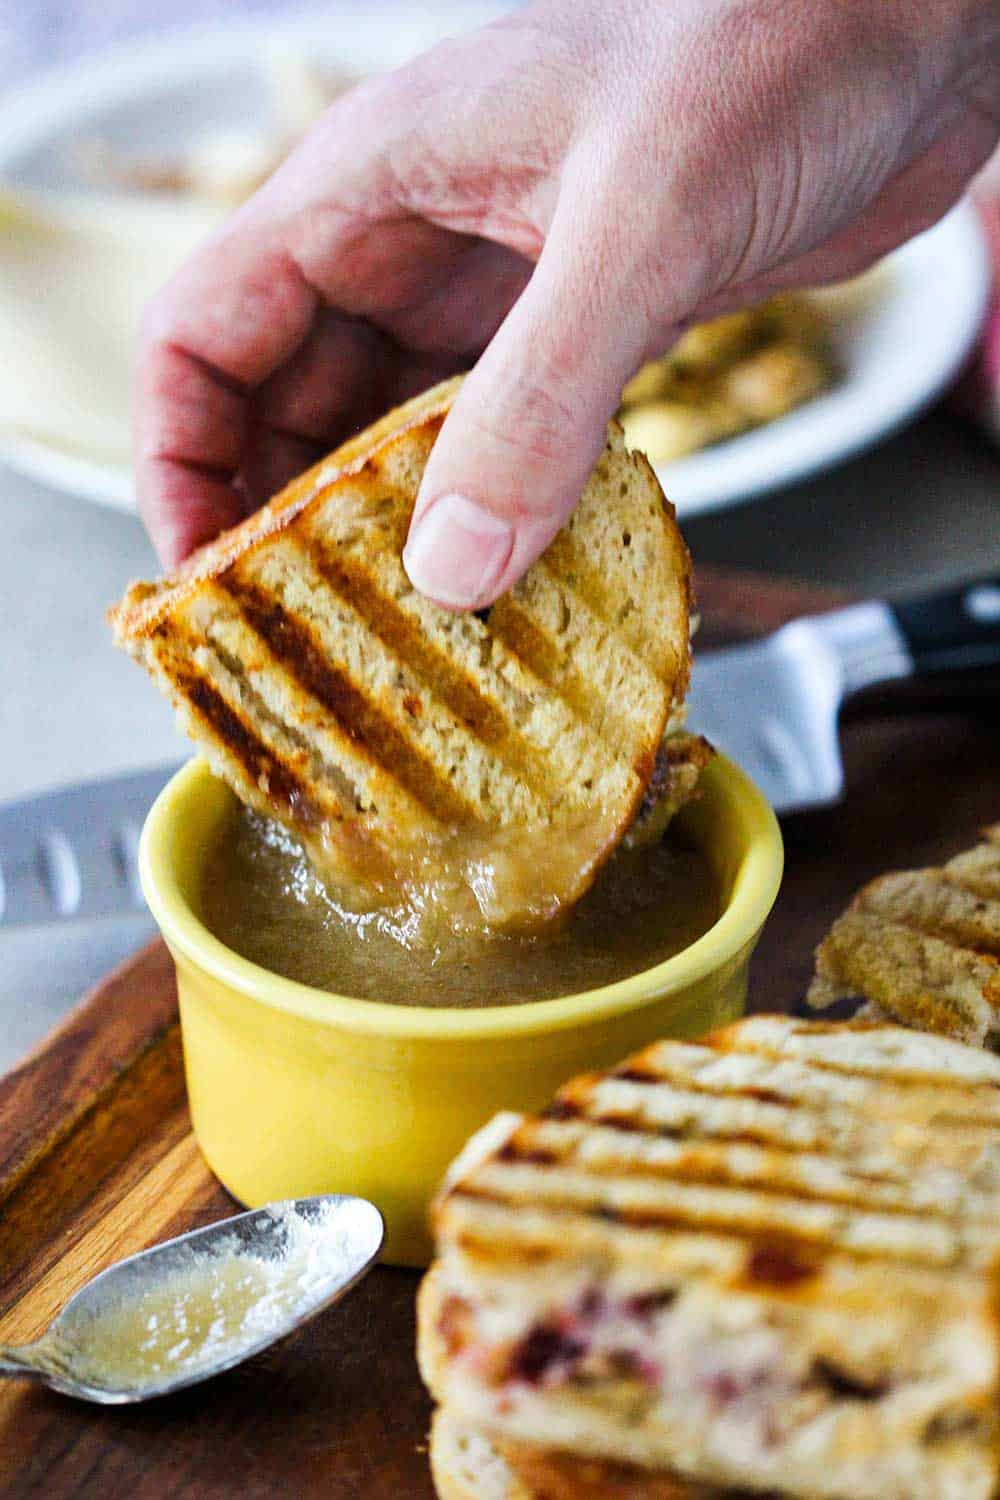 A hand dipping a Day After Thanksgiving Panini into a bowl of gravy.